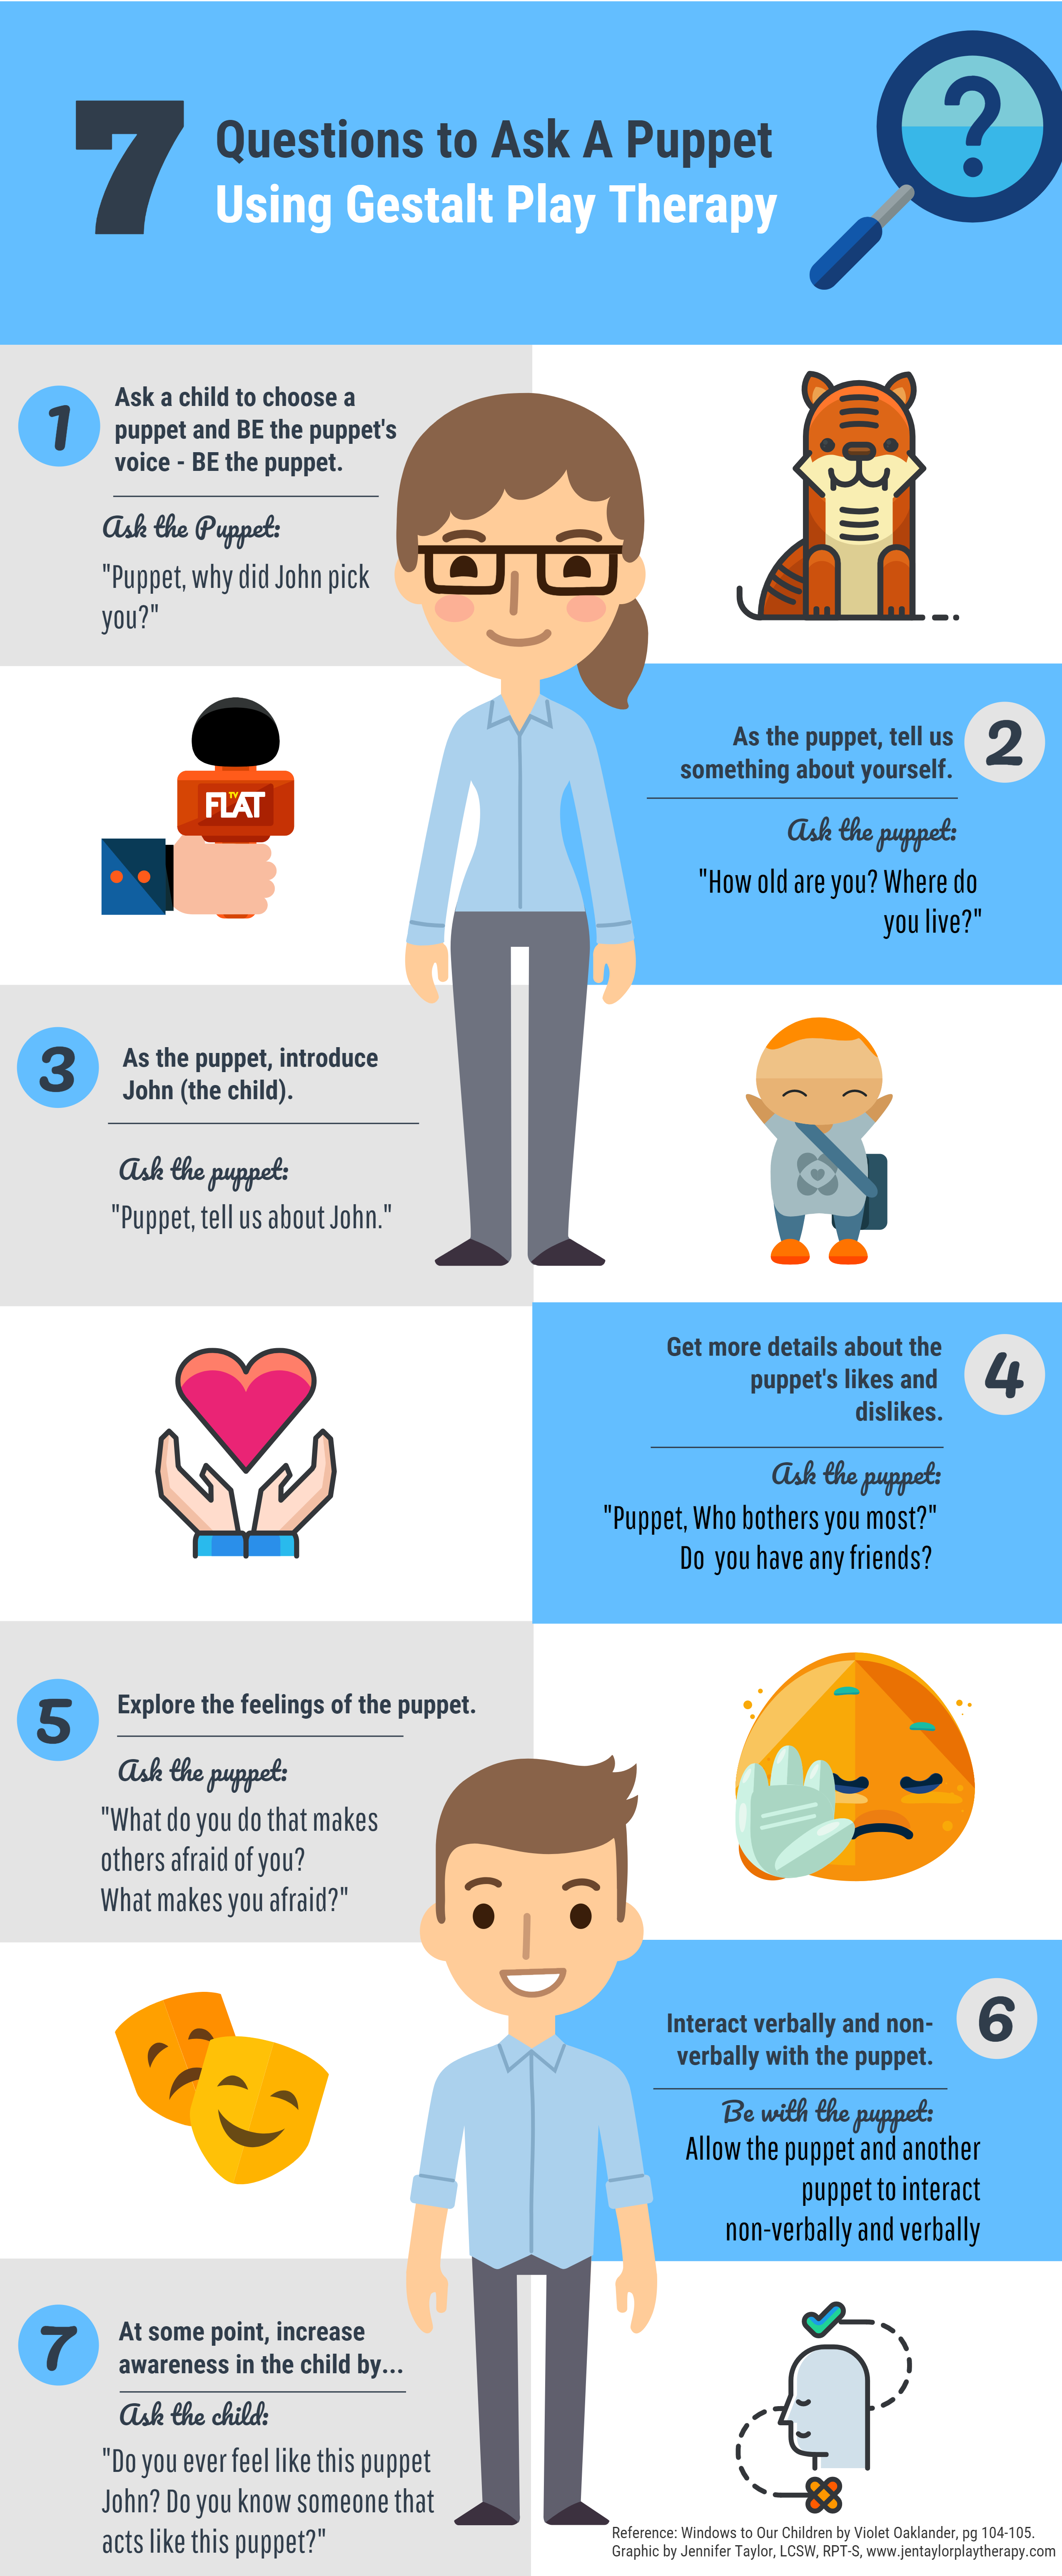 7 Questions To Ask A Puppet Using Gestalt Play Therapy